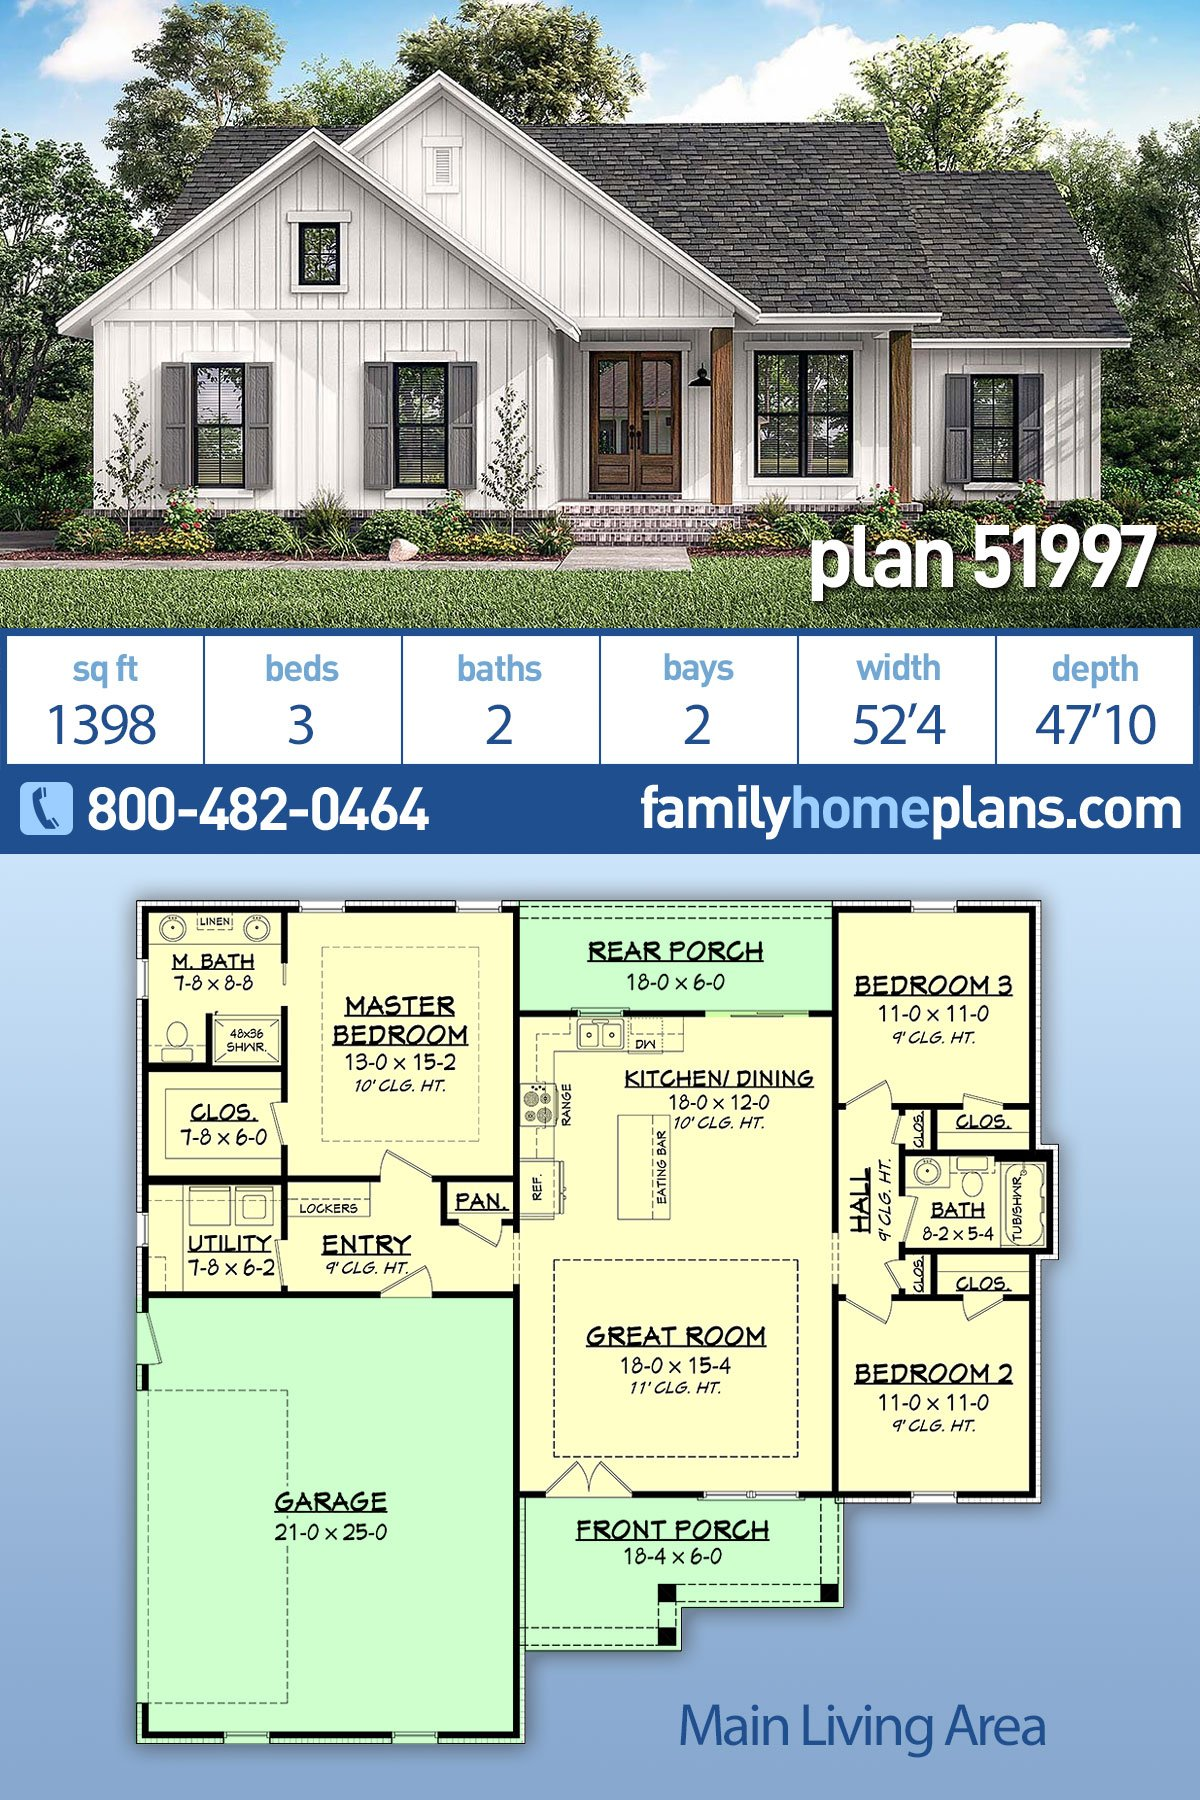 Country, Farmhouse, Southern, Traditional House Plan 51997 with 3 Beds, 2 Baths, 2 Car Garage